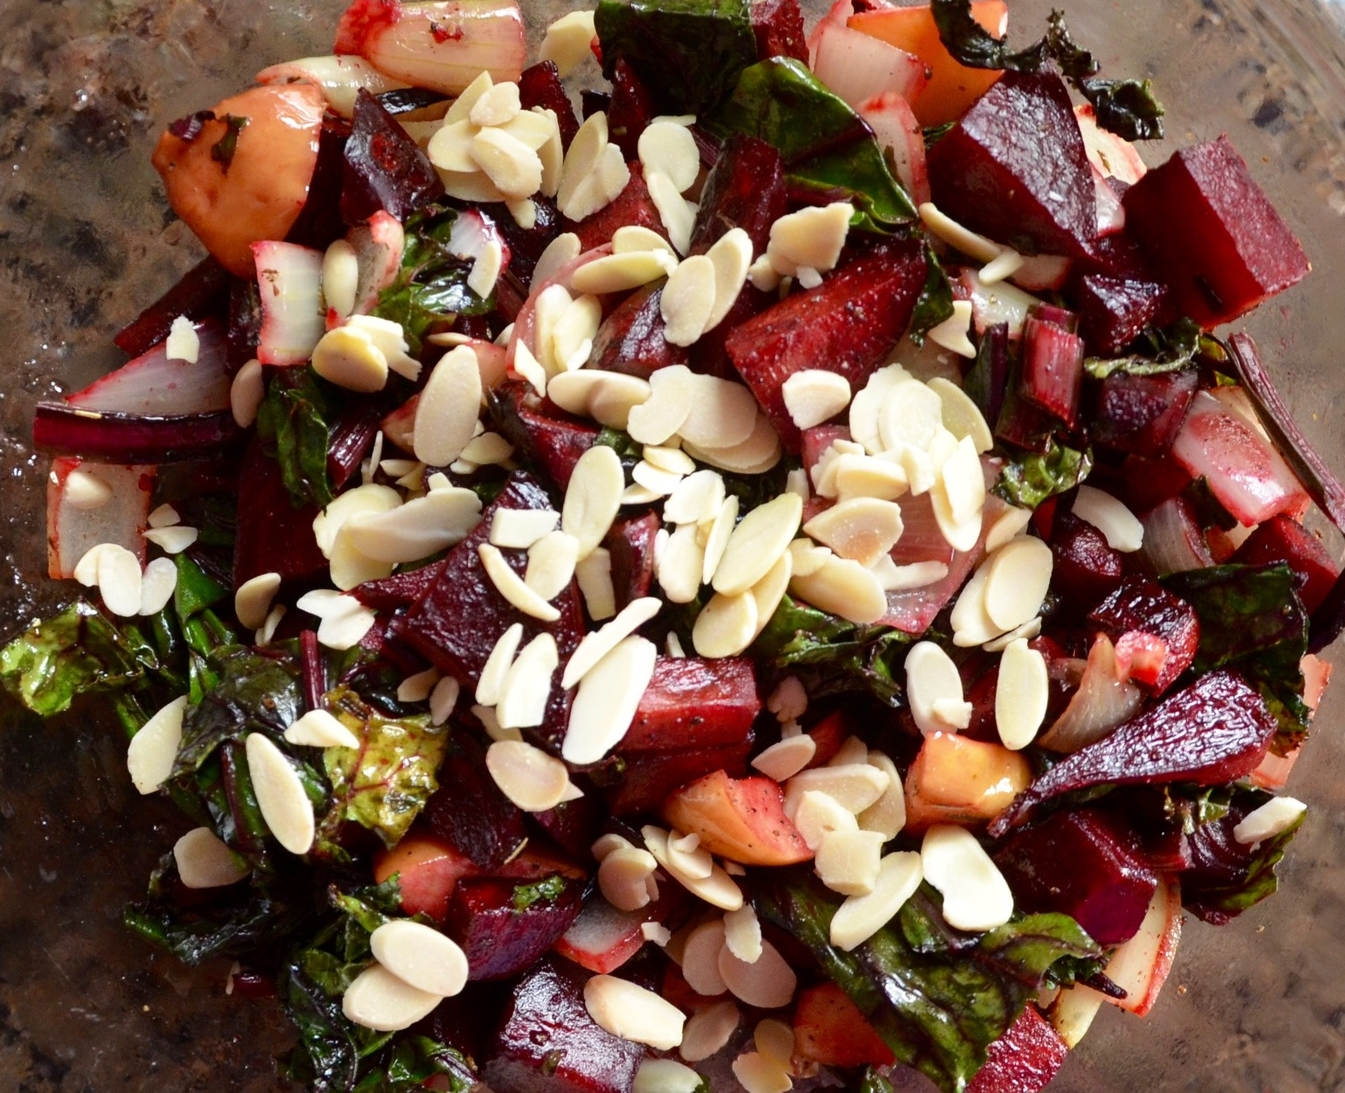 Roasted Beet Recipe with almonds